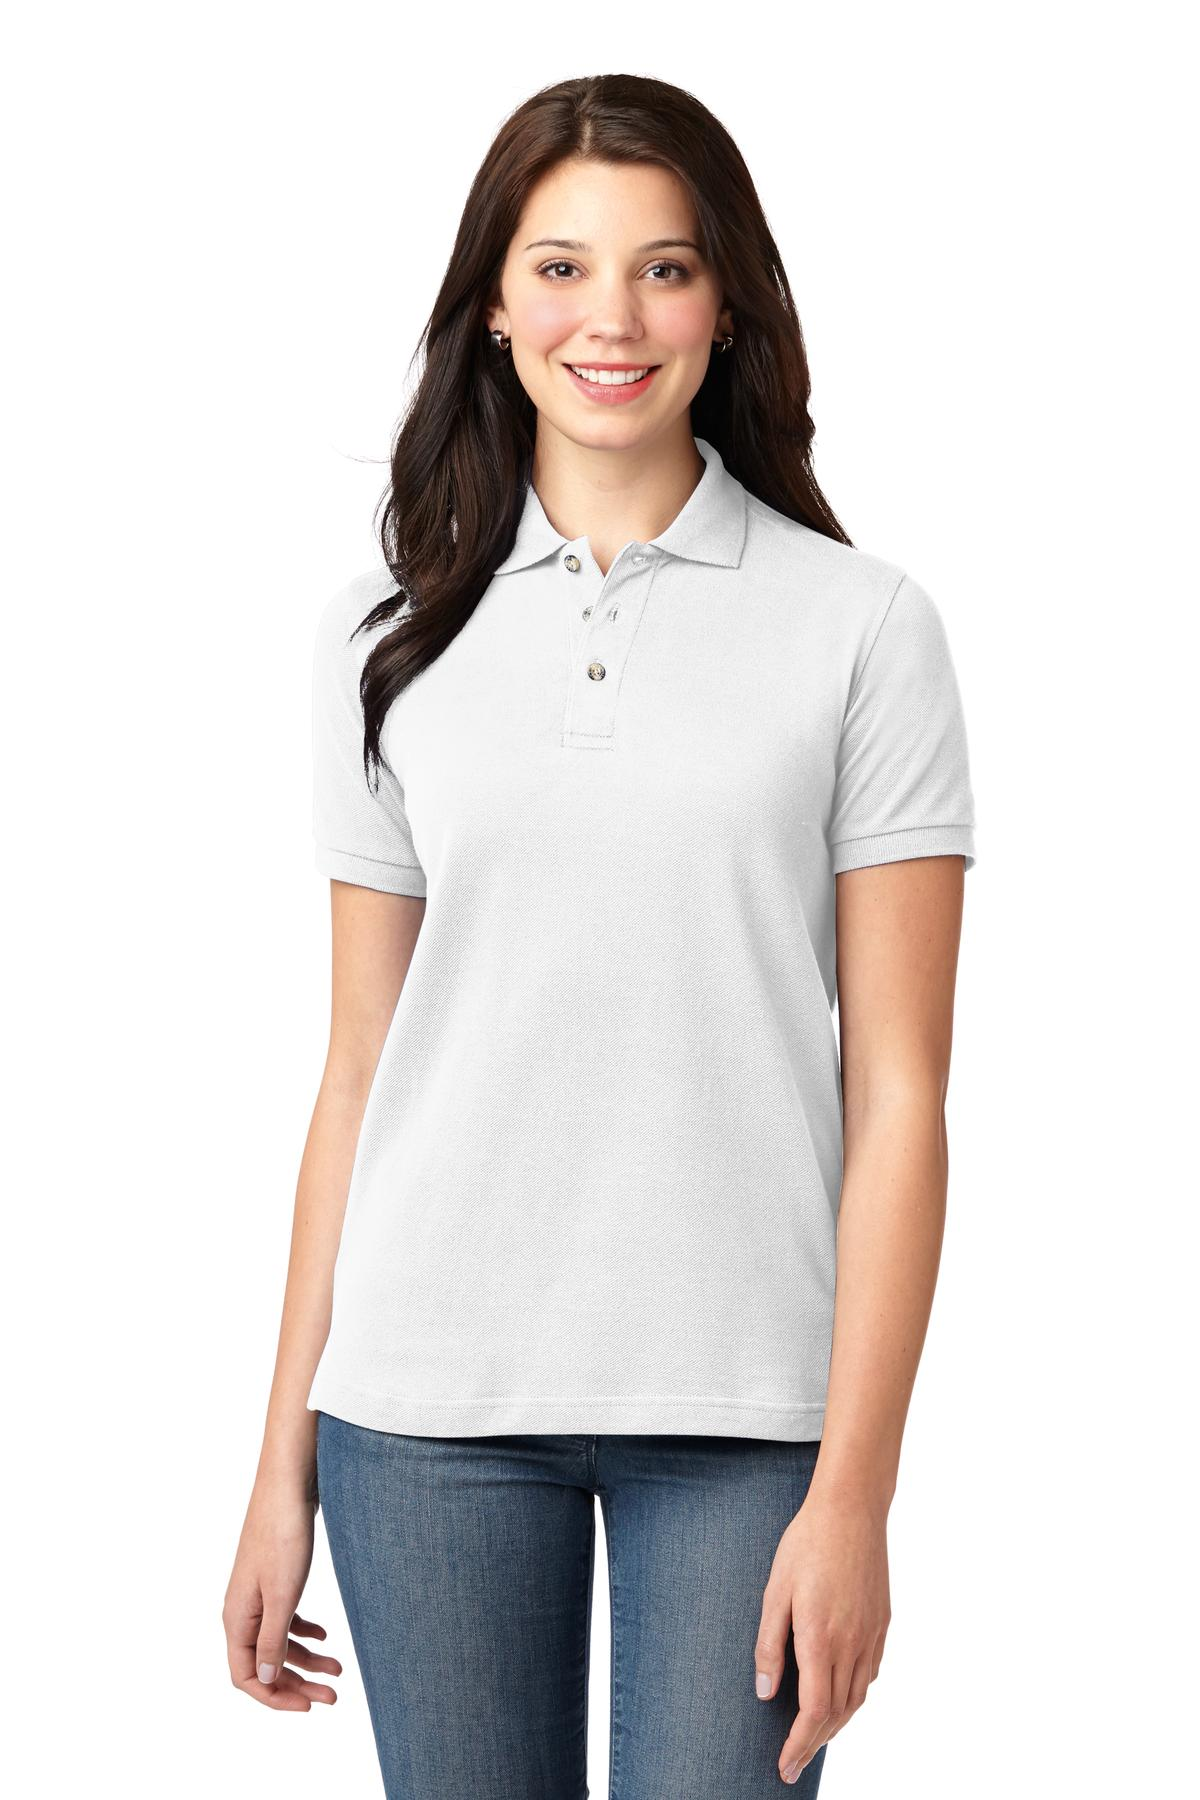 Hibiscus Port Authority Ladies Silk Touch Polo.